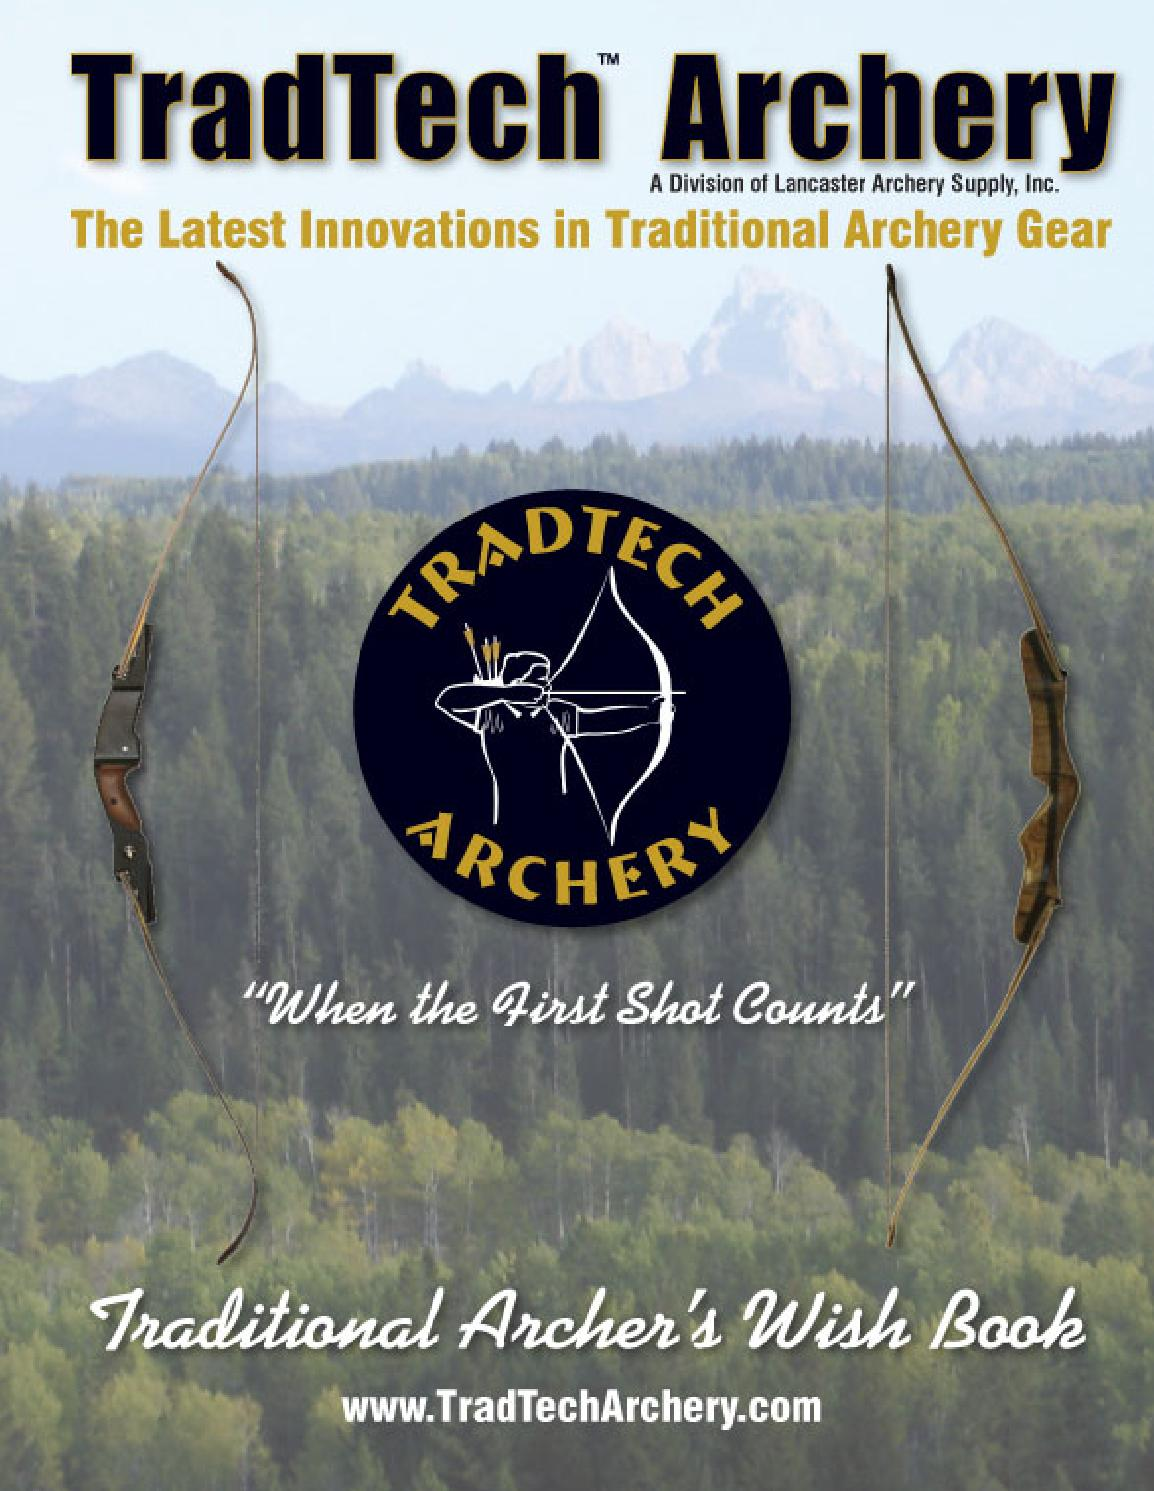 hight resolution of tradtech archery the latest innovations in traditional archery gear when the first shot counts c by davy goedertier issuu